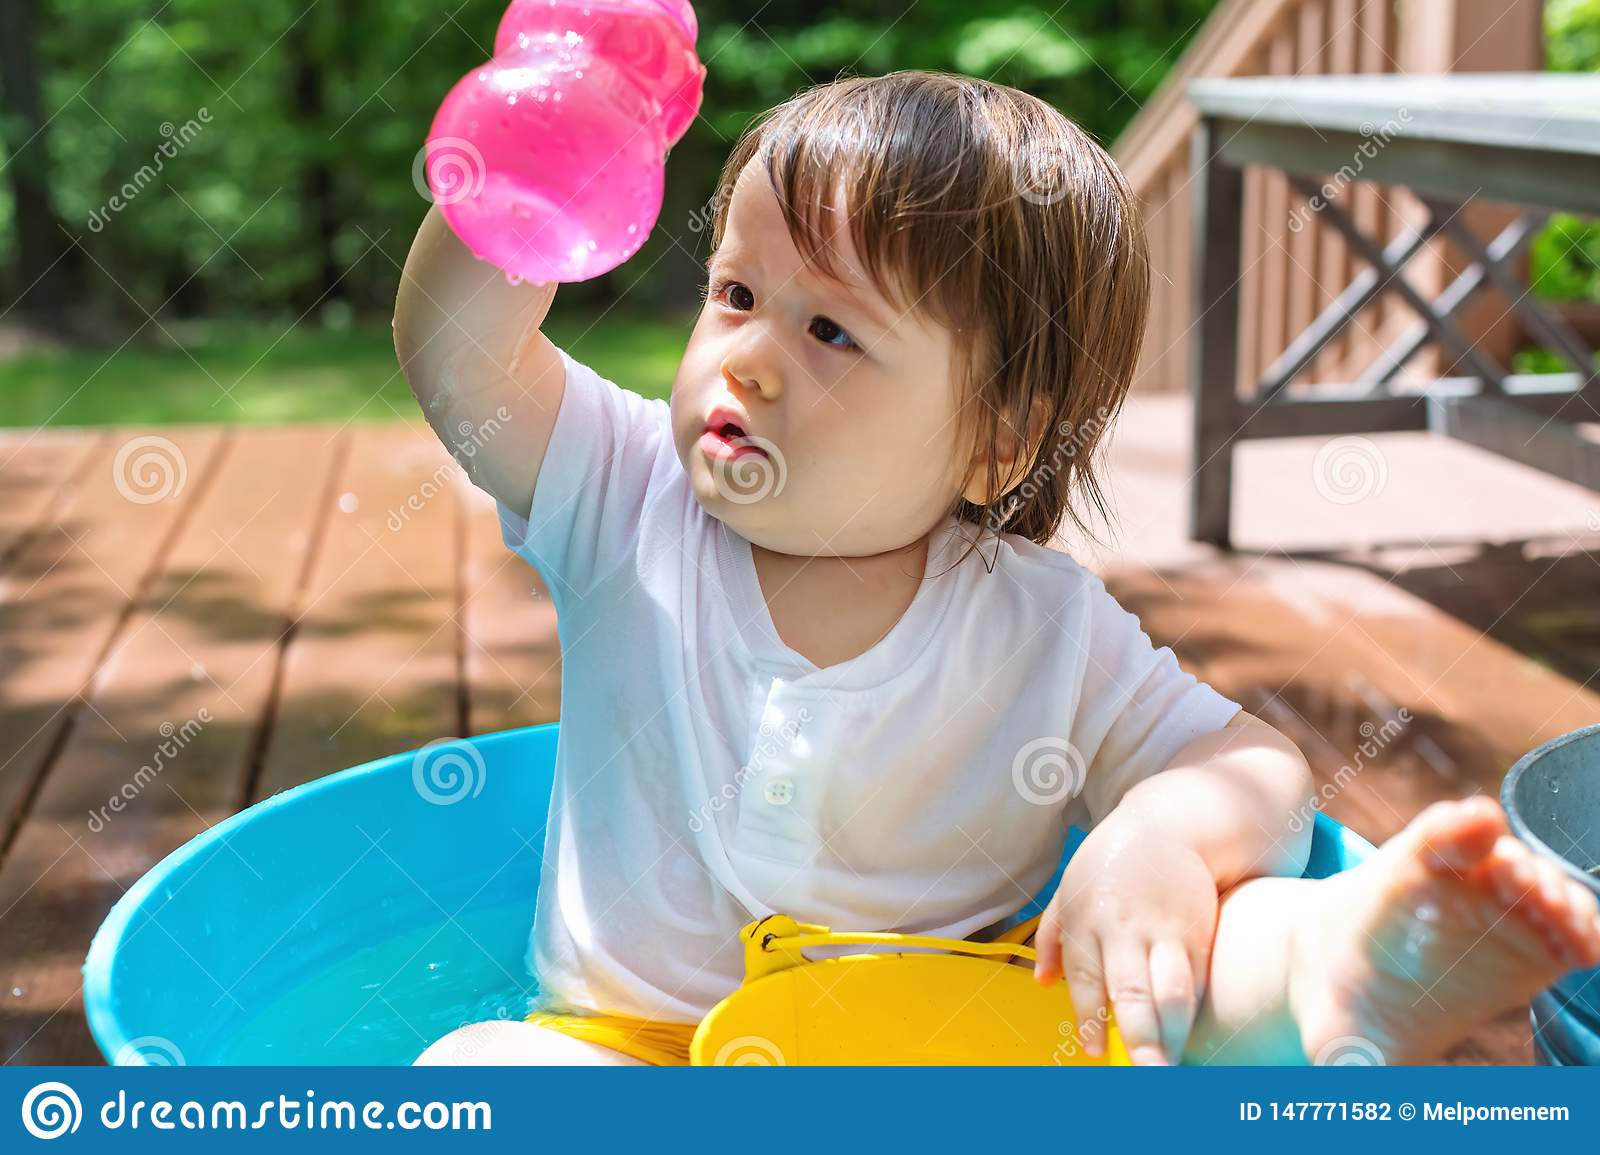 Child Water Sky Ocean Blue - a Royalty Free Stock Photo